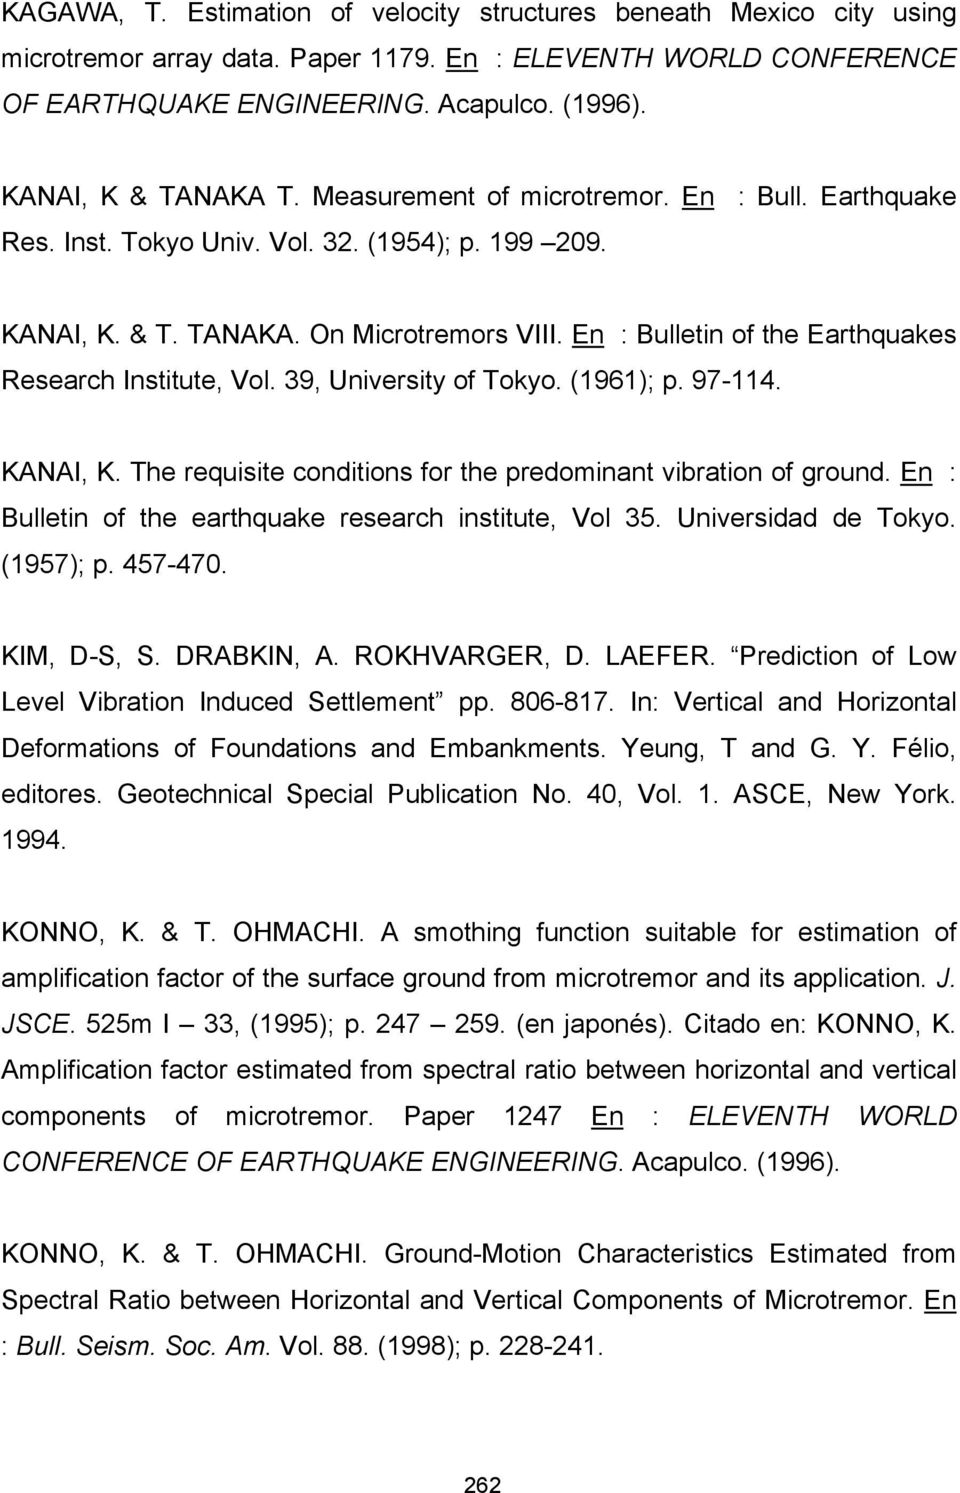 En : Bulletin of the Earthquakes Research Institute, Vol. 39, University of Tokyo. (1961); p. 97-114. KANAI, K. The requisite conditions for the predominant vibration of ground.